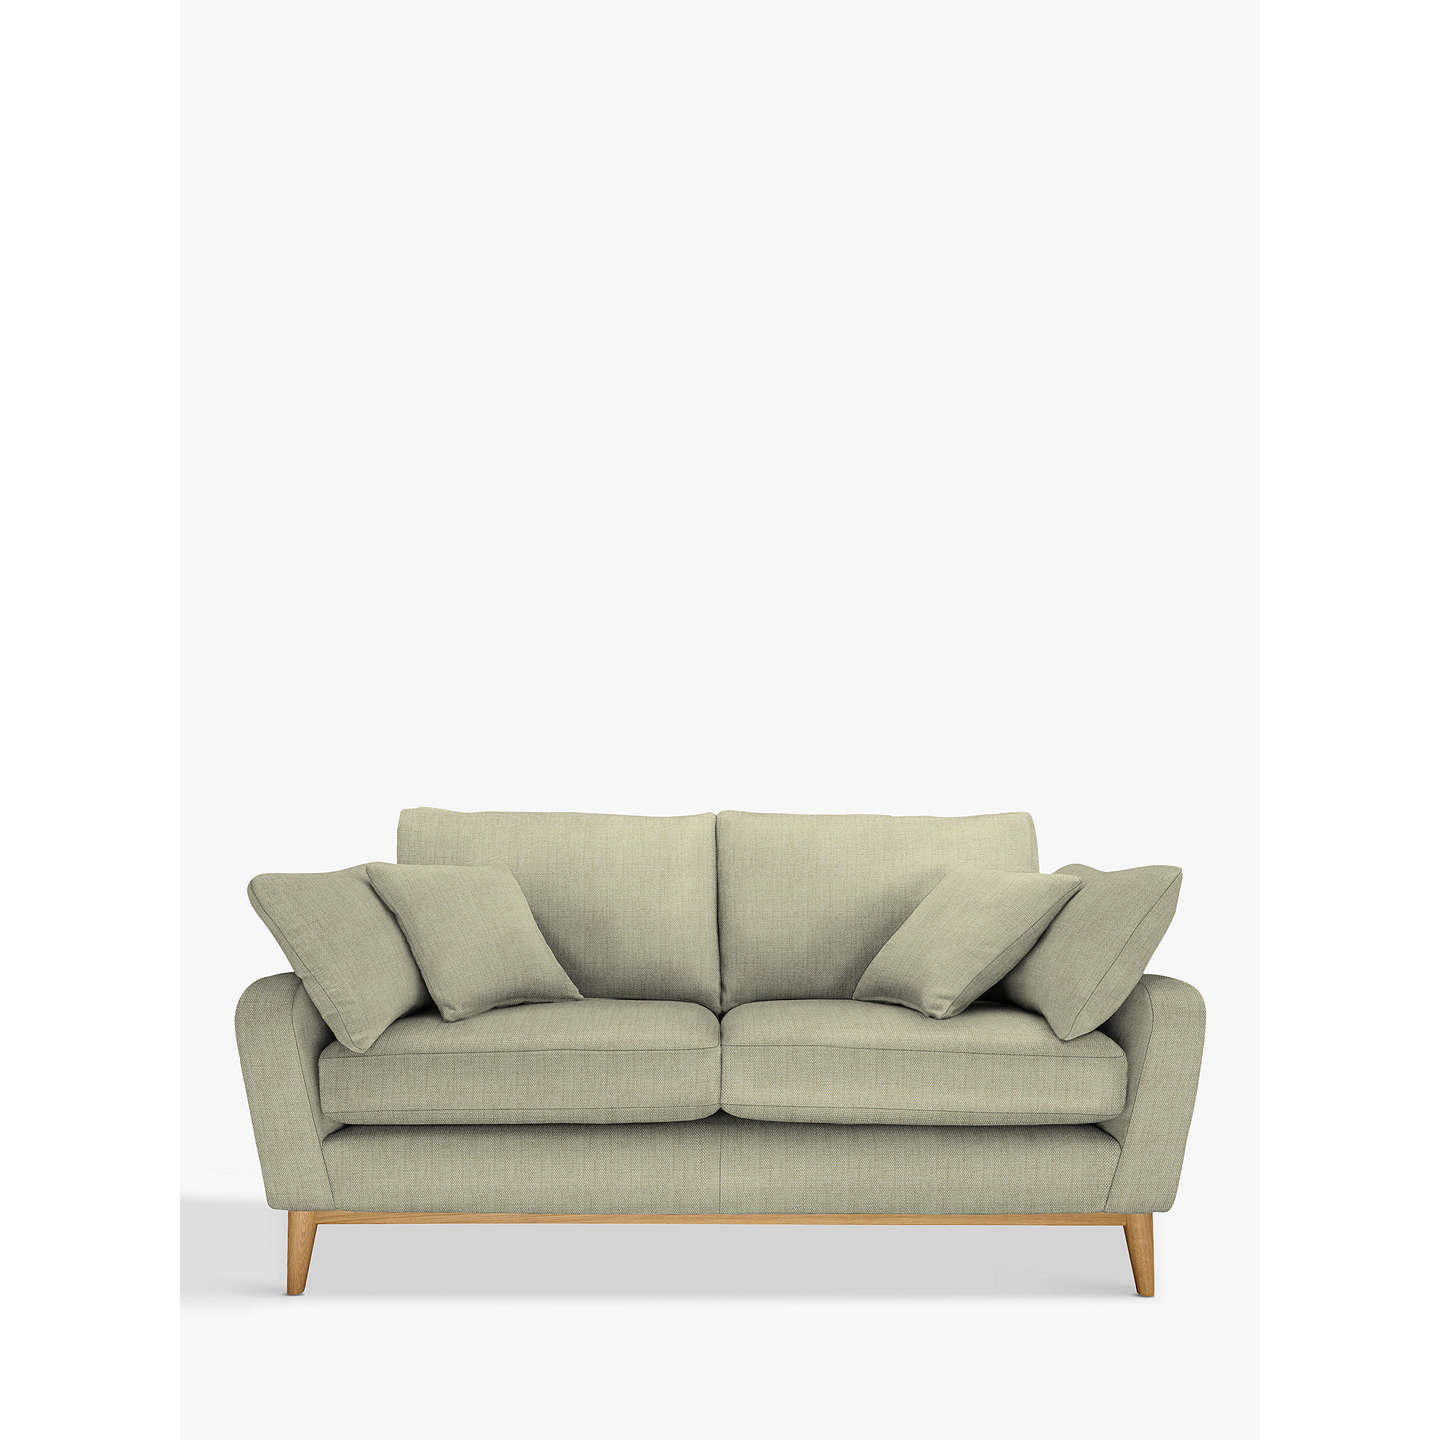 Buyercol for John Lewis Salento Medium 2 Seater Sofa, Oak Leg, Maria Eau De Nil Online at johnlewis.com